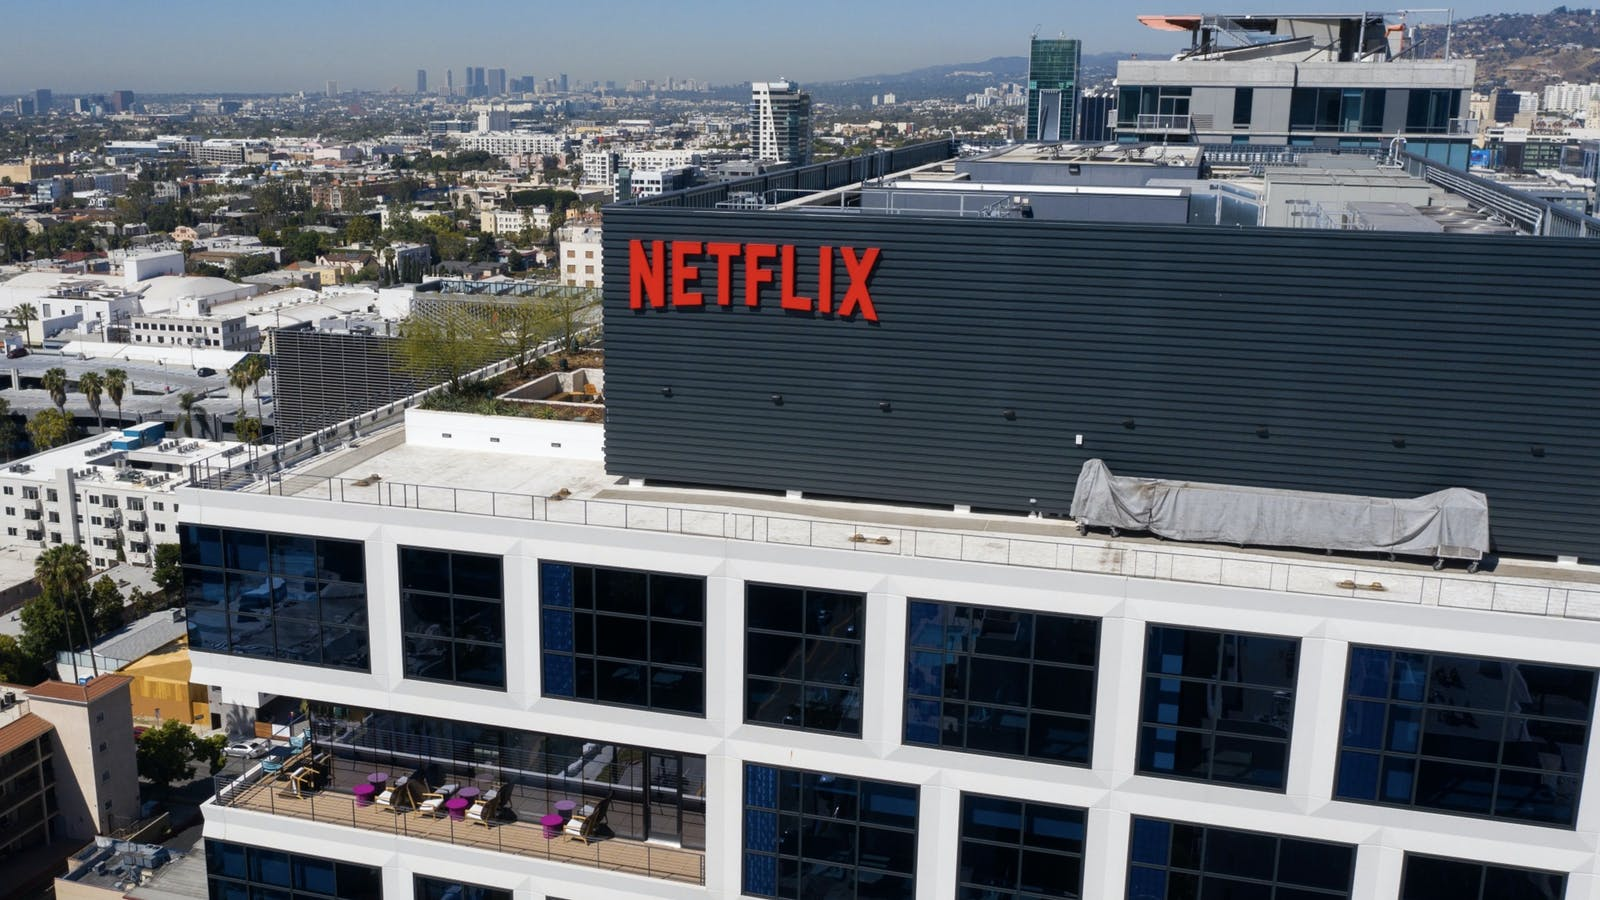 Netflix's Los Angeles office building. Photo by Bloomberg